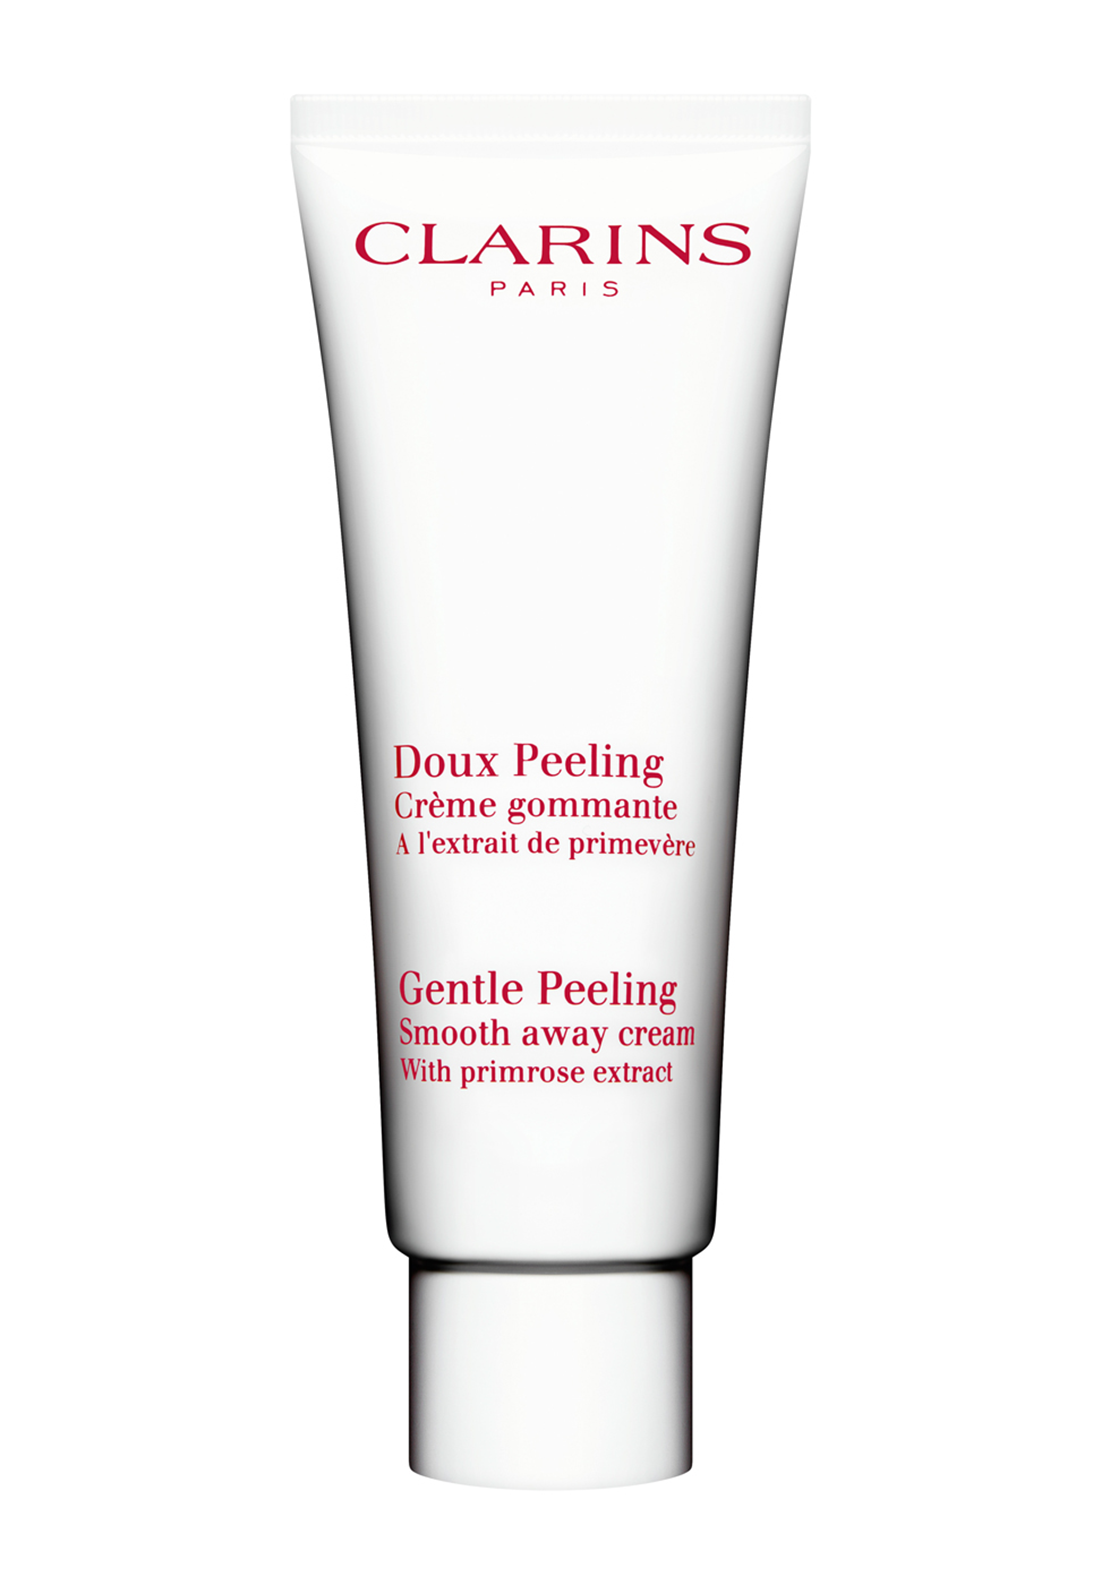 Clarins Gentle Peeling Smooth Away Cream, 50ml